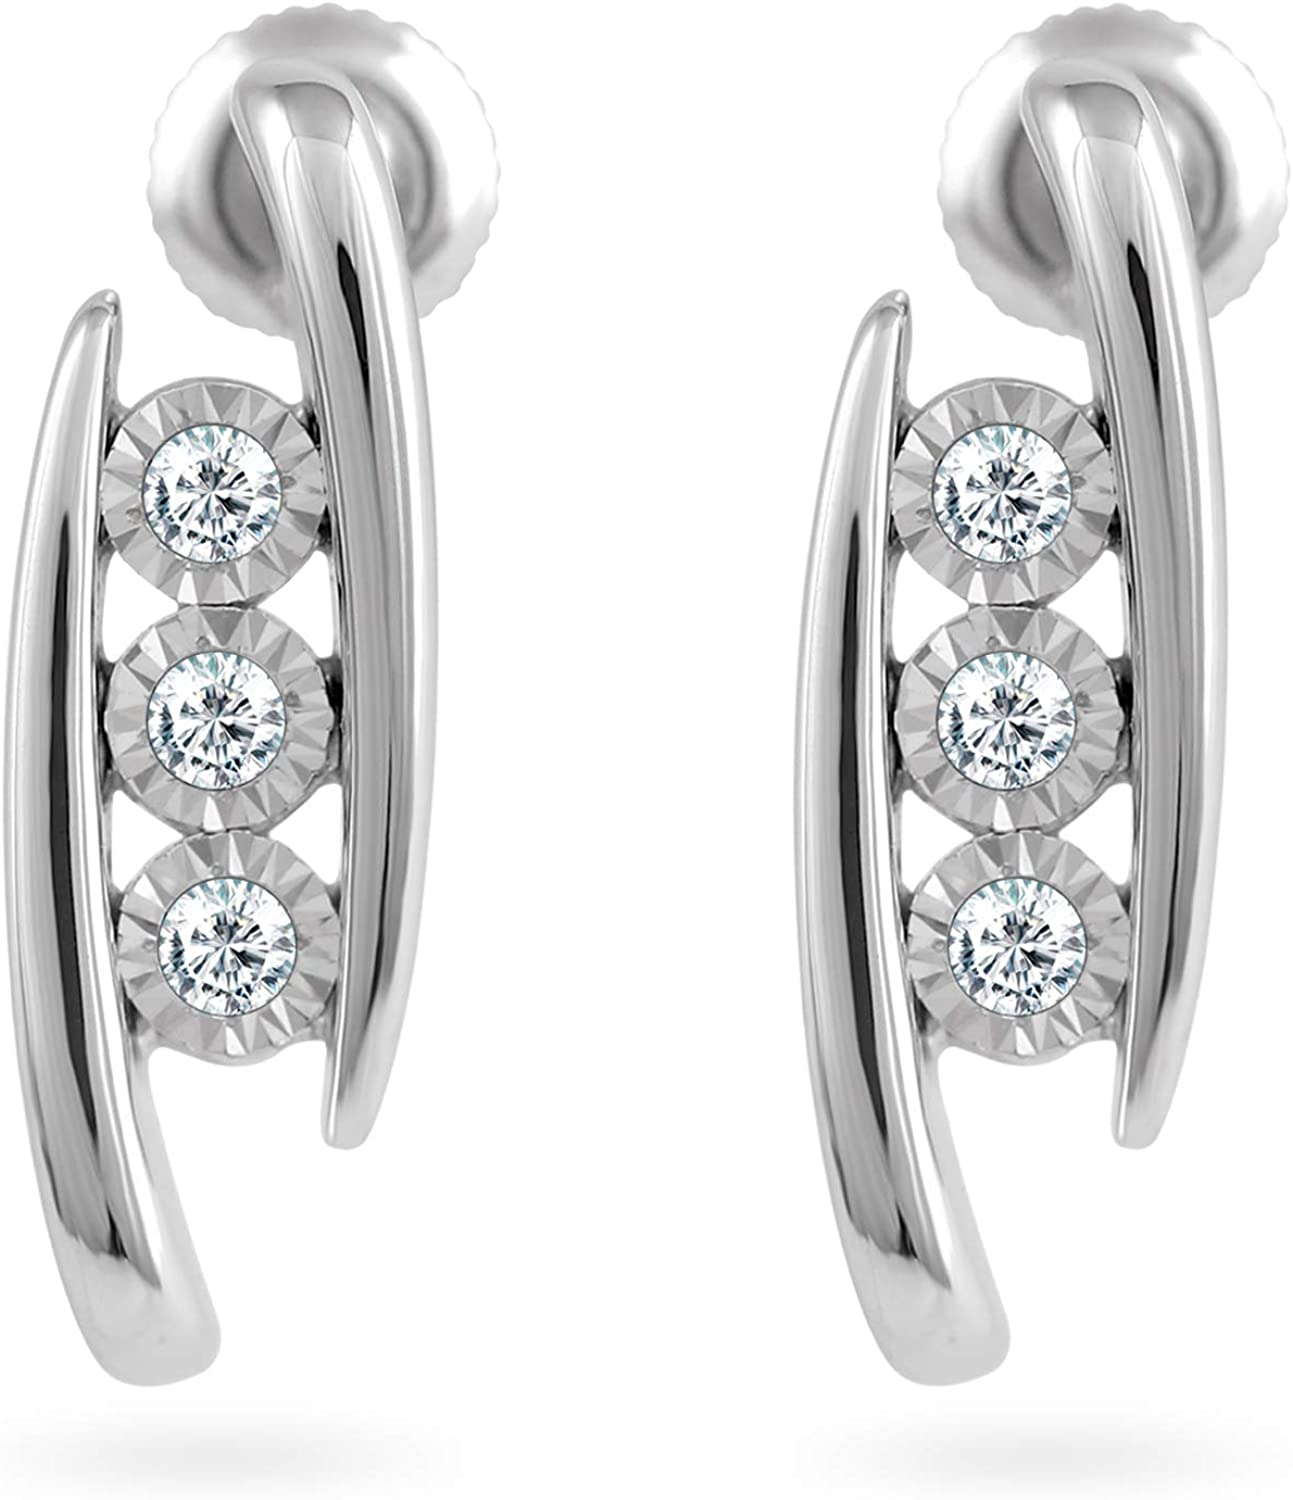 14k White Gold 0.05 to 0.30 Carat Diamond Miracle Plate Stud Earrings for Women (Color- IJ, Clarity I2/I3) 4-Prong Basket Set, Screw-Back Clasps